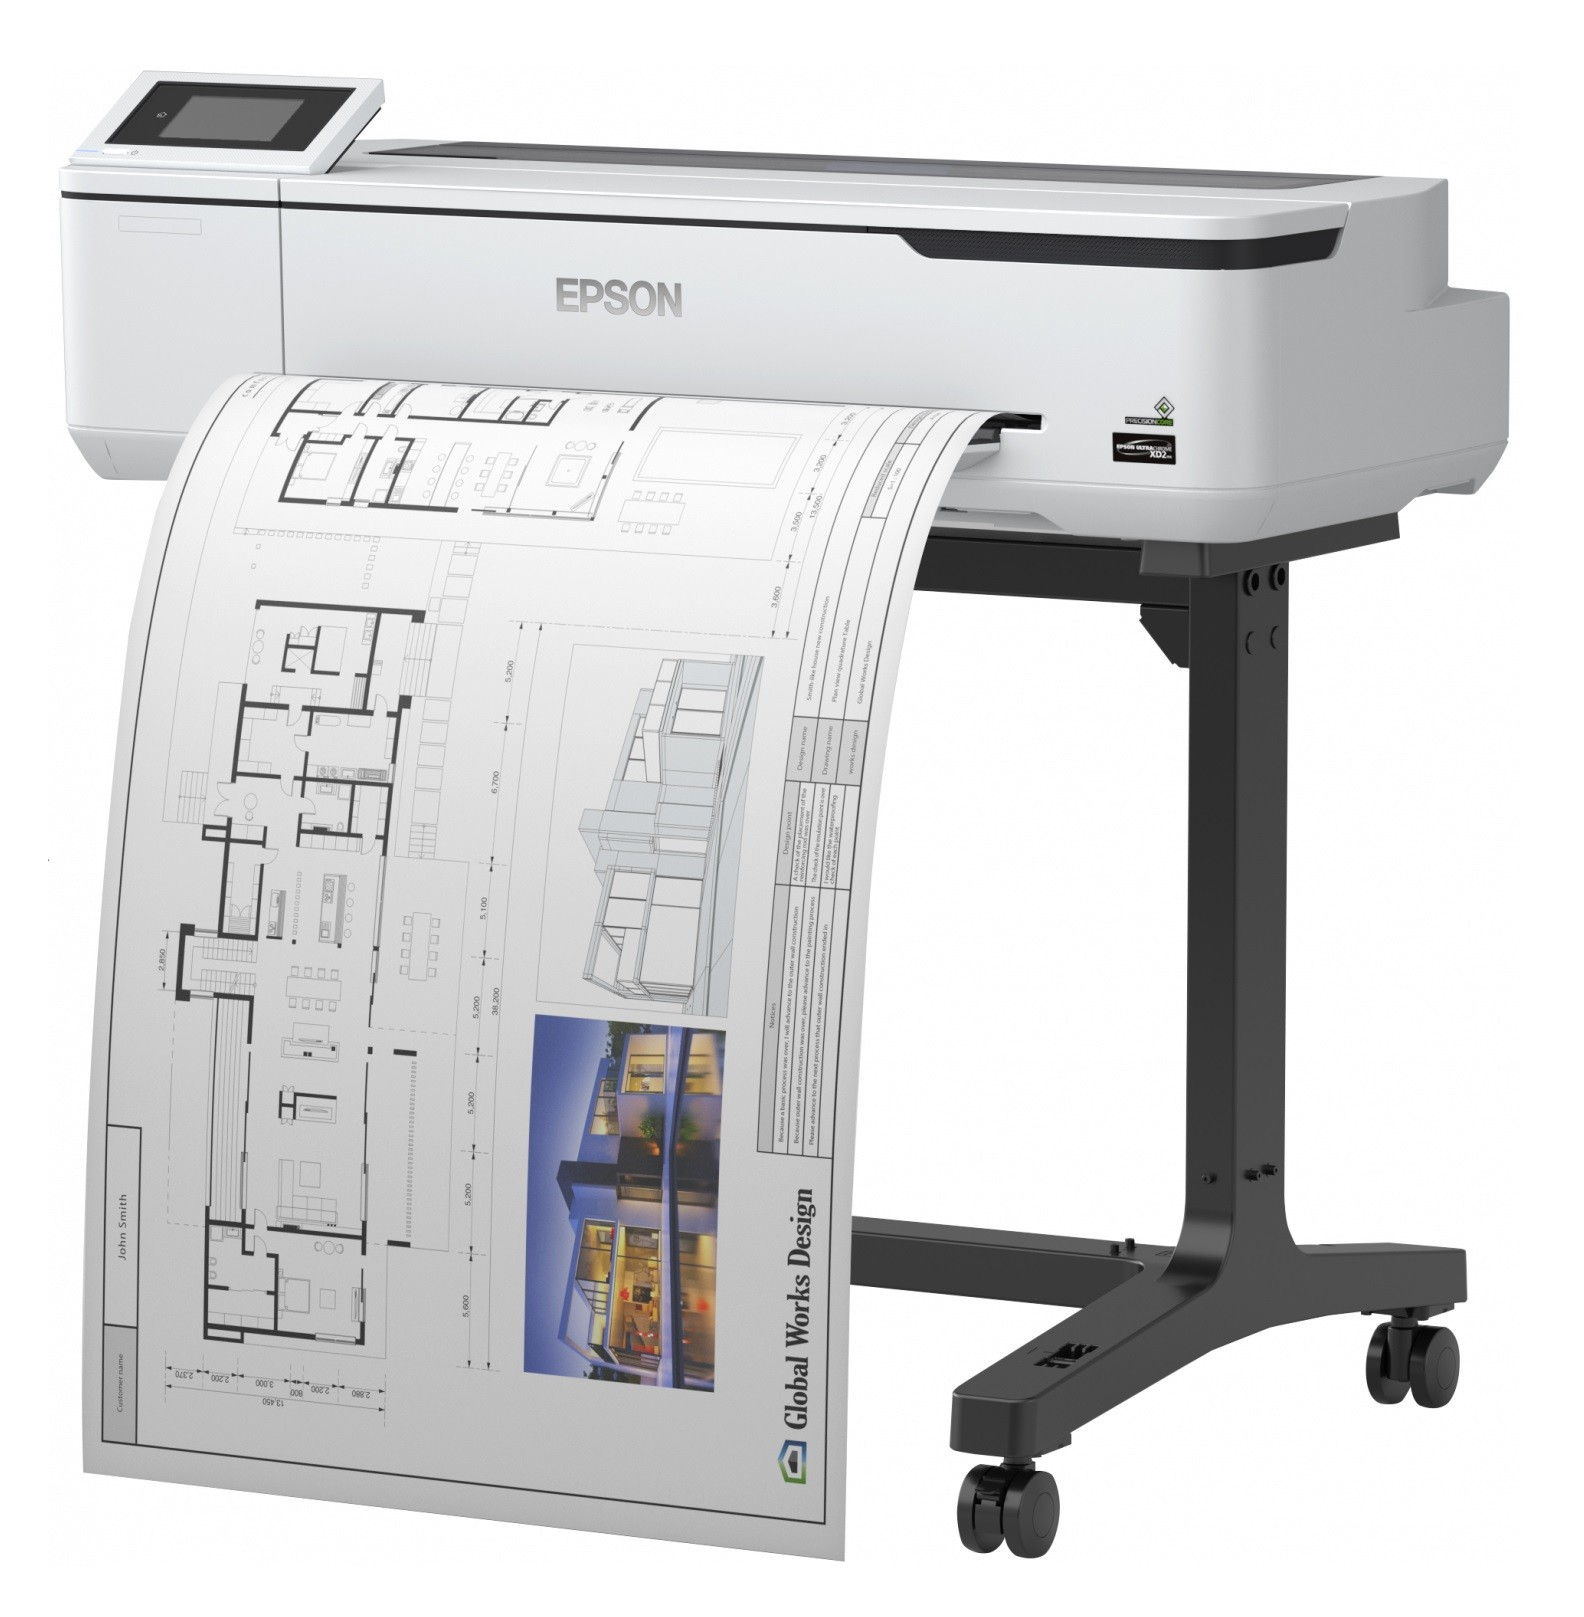 EPSON SC-T3100 with Stand